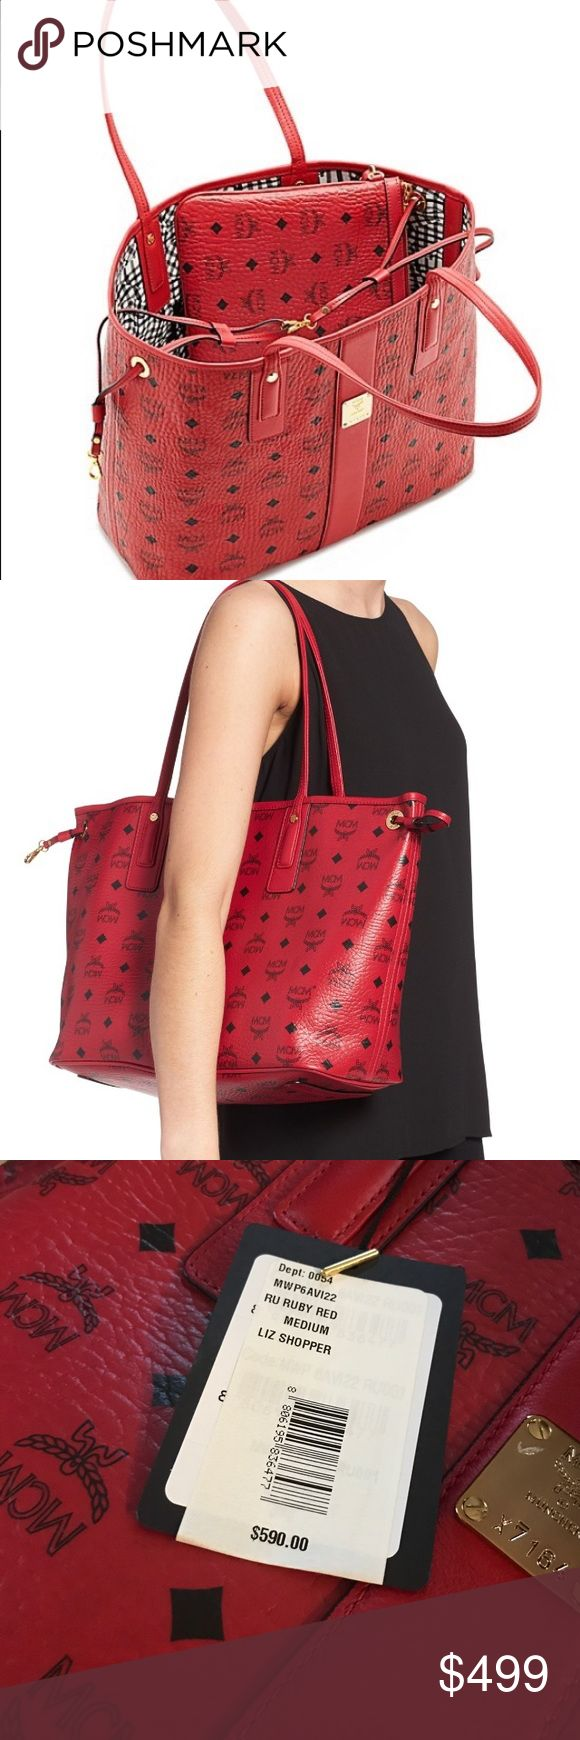 💜authentic mcm NEW liz red tote w pouch This is a brand-new bag with the wrapper still on it. It's the liz medium tote in ruby. The duster is included and the tag is attached. The pouch is also included and still wrapped in tissue. My price is firm. I don't trade. MCM Bags Totes